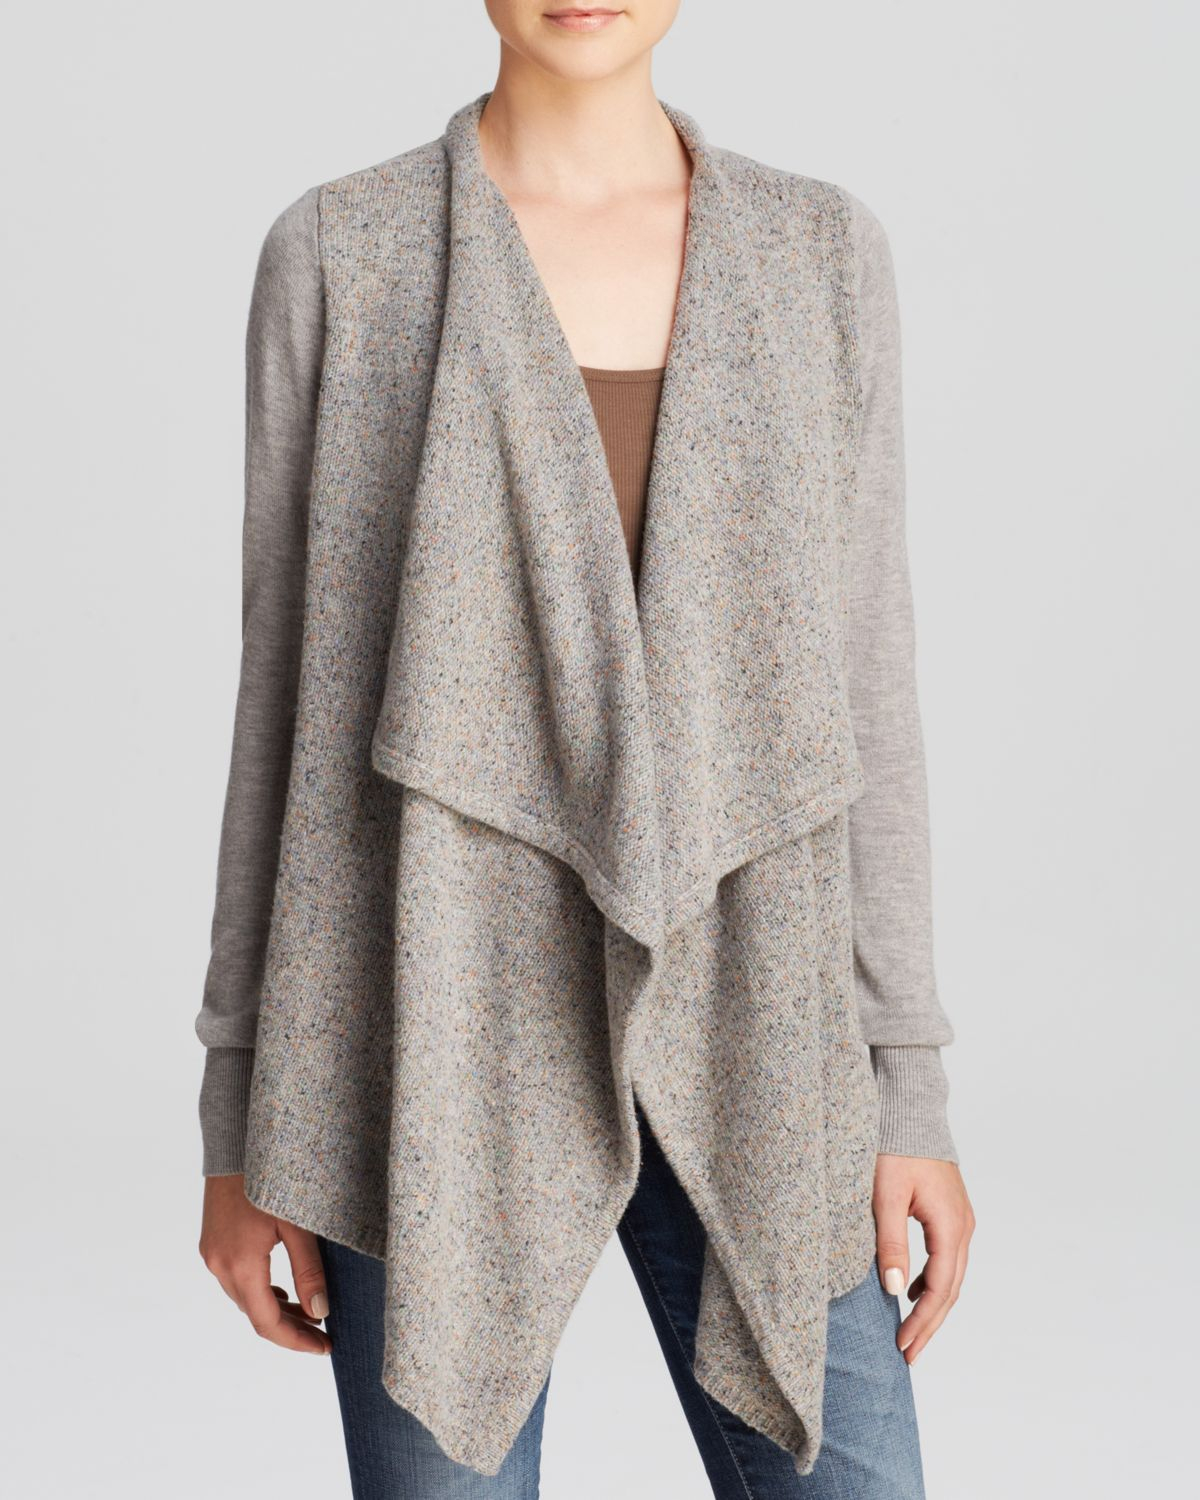 Joie Cardigan - Starley Open Drape in Gray | Lyst